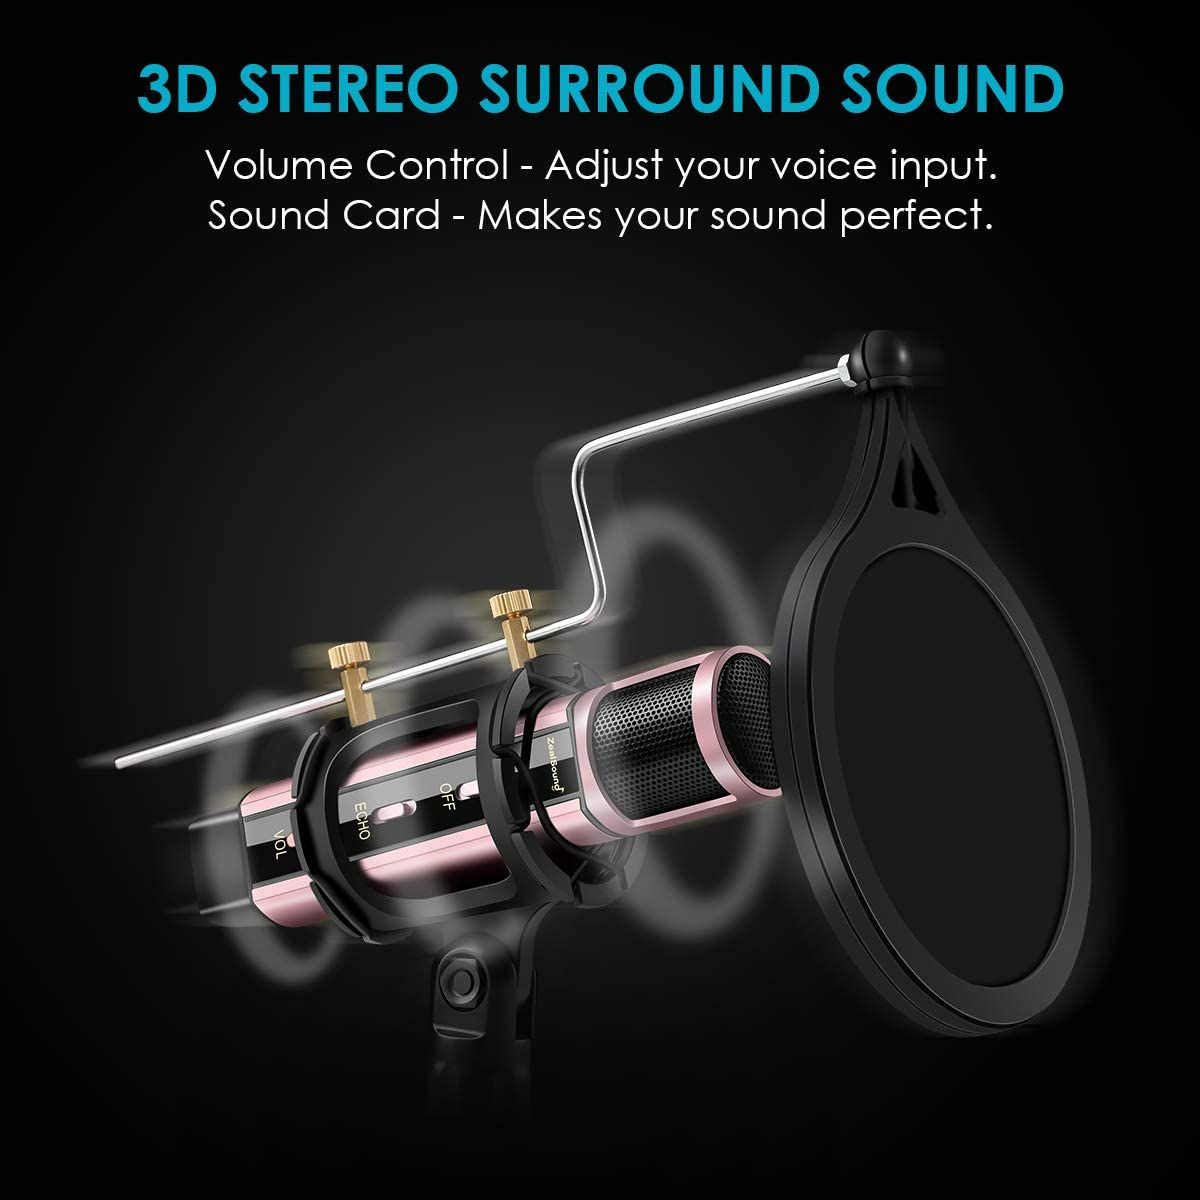 Studio Recording Microphone ZealSound Condenser Broadcast Microphone w//Stand Built-in Sound Card Echo Recording Karaoke Singing for Phone Computer PC Garageband Smule Live Stream /& YouTube